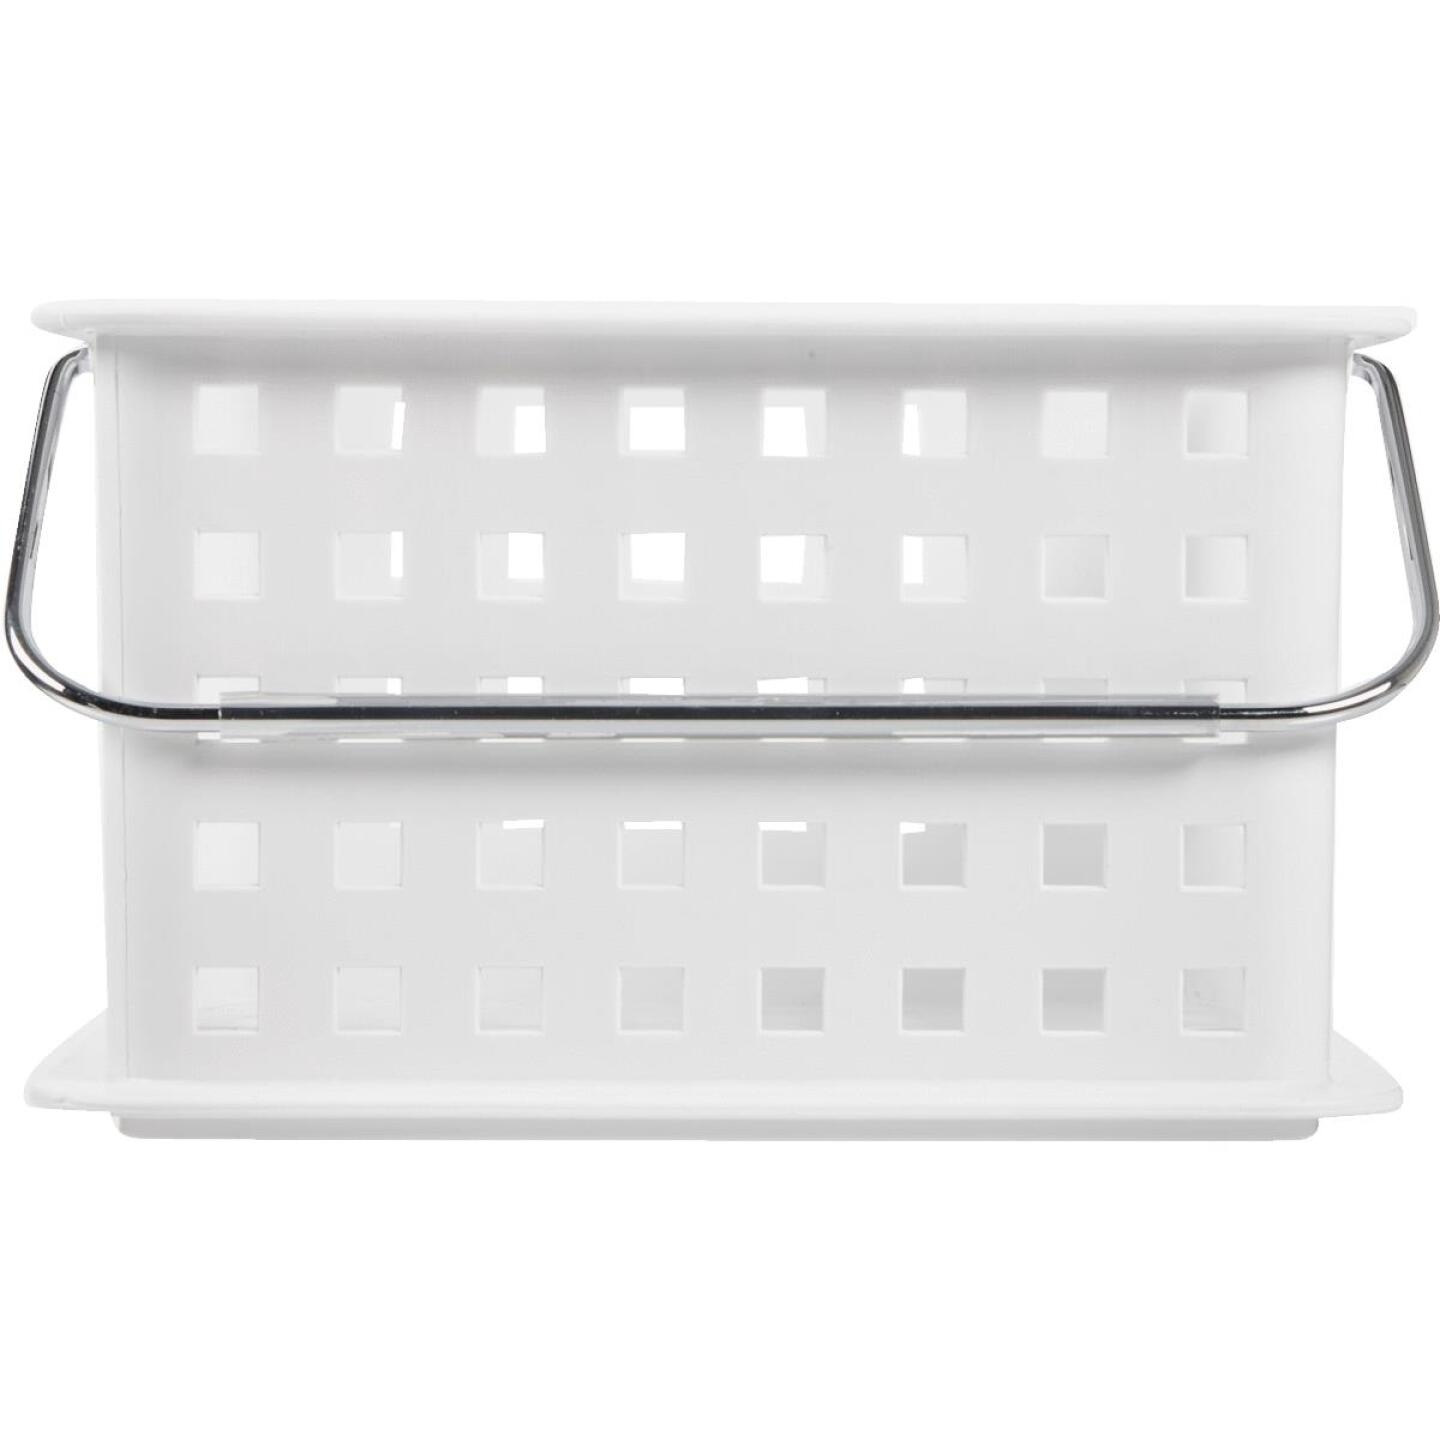 InterDesign Small White Plastic Basket Image 2